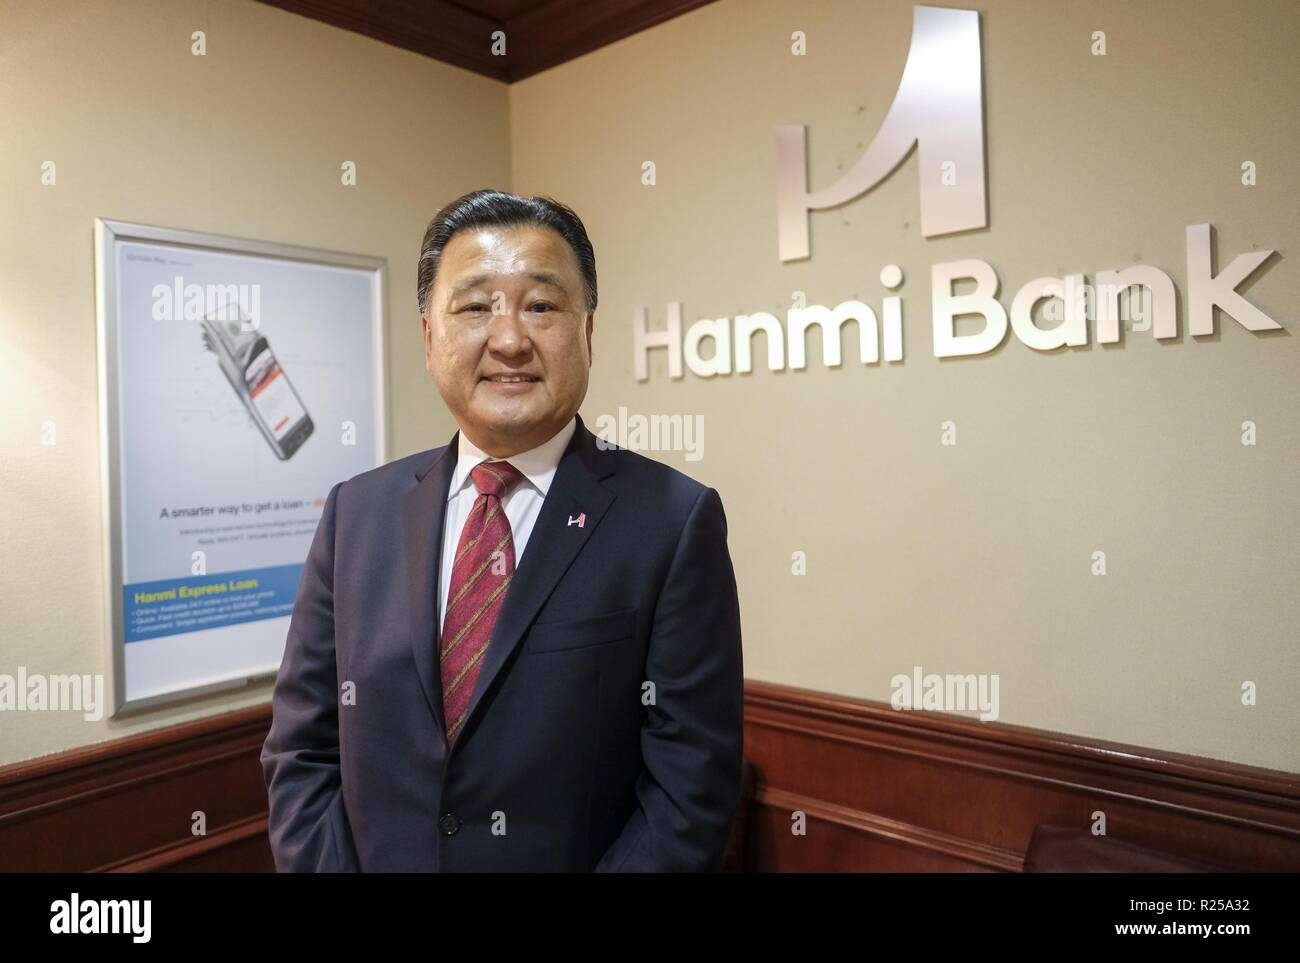 Hanmi Stock Photos & Hanmi Stock Images - Alamy